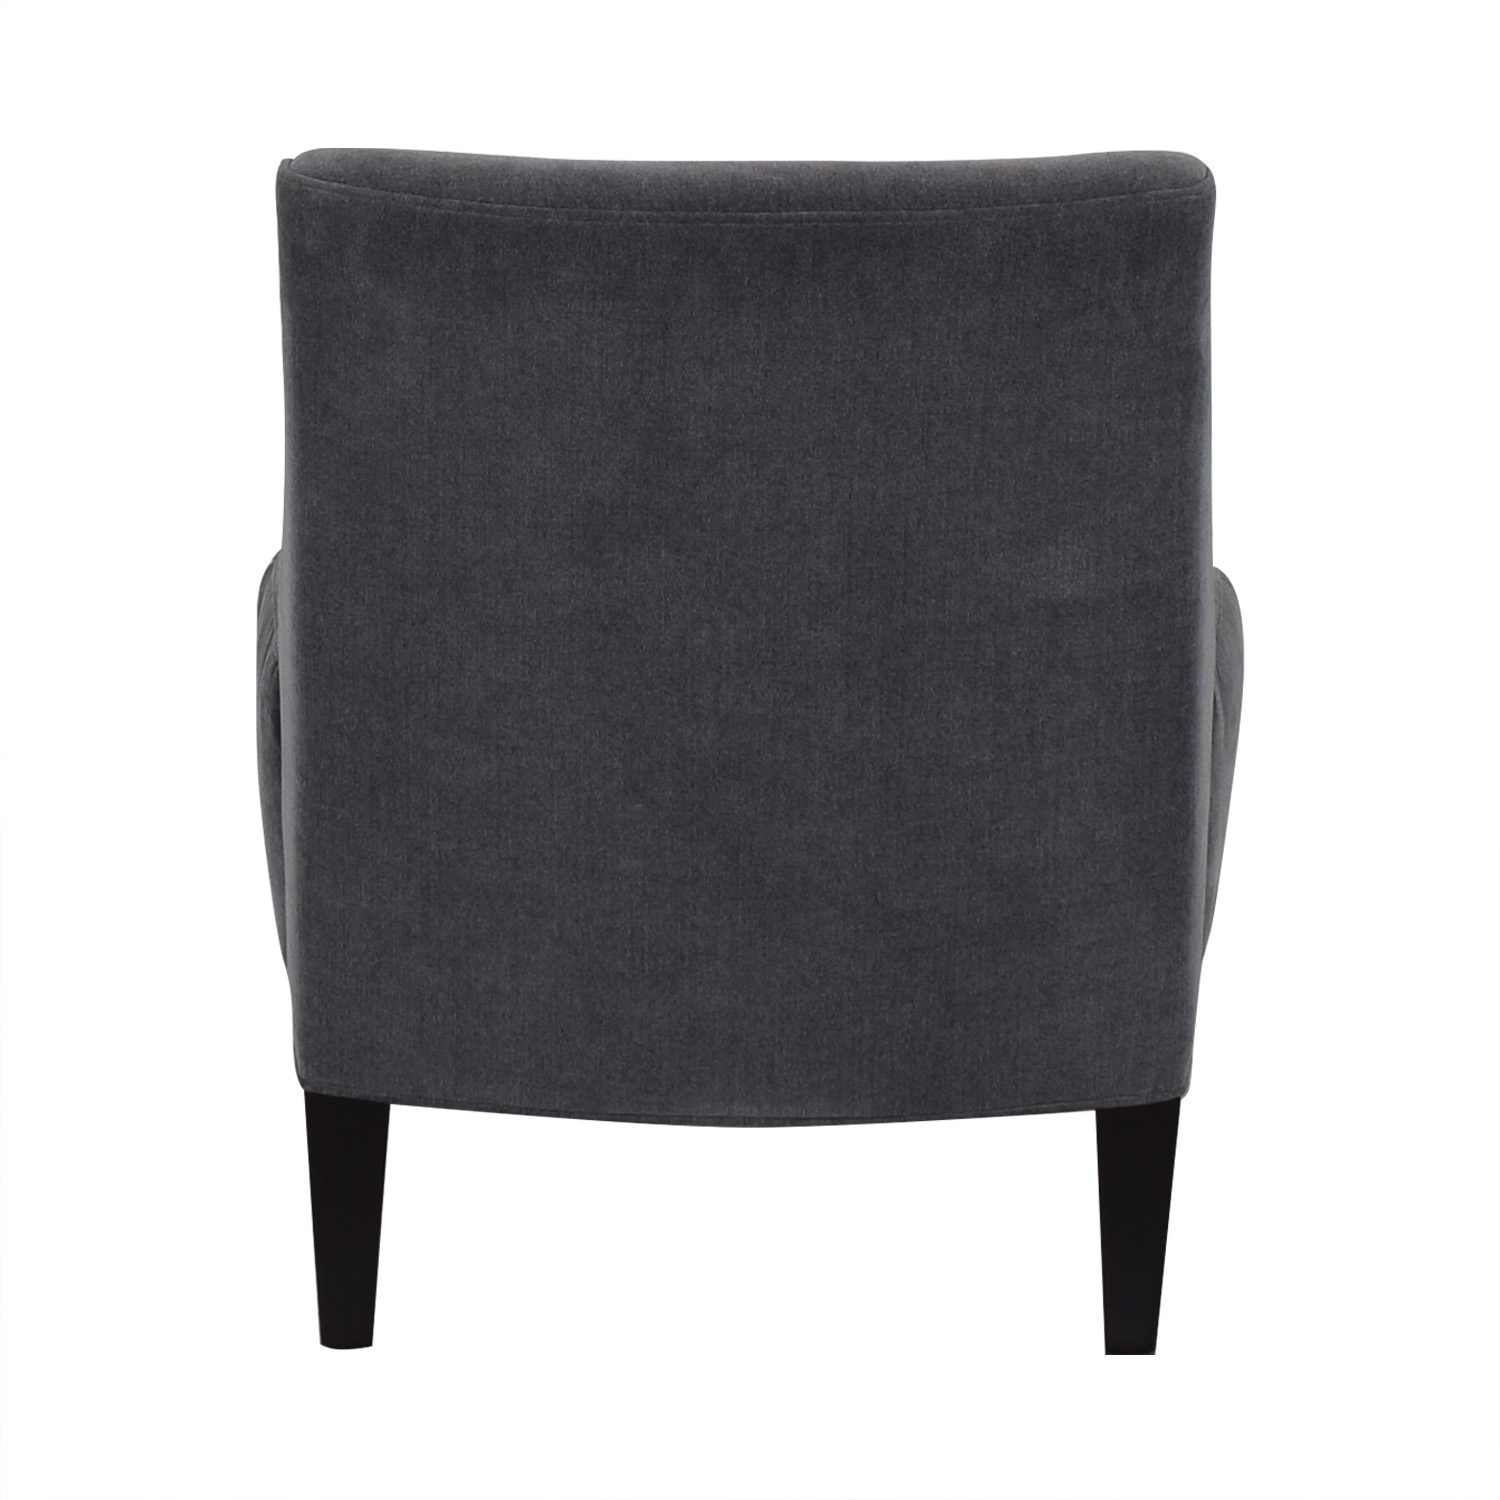 Mitchell Gold + Bob Williams Accent Chair Mitchell Gold + Bob Williams